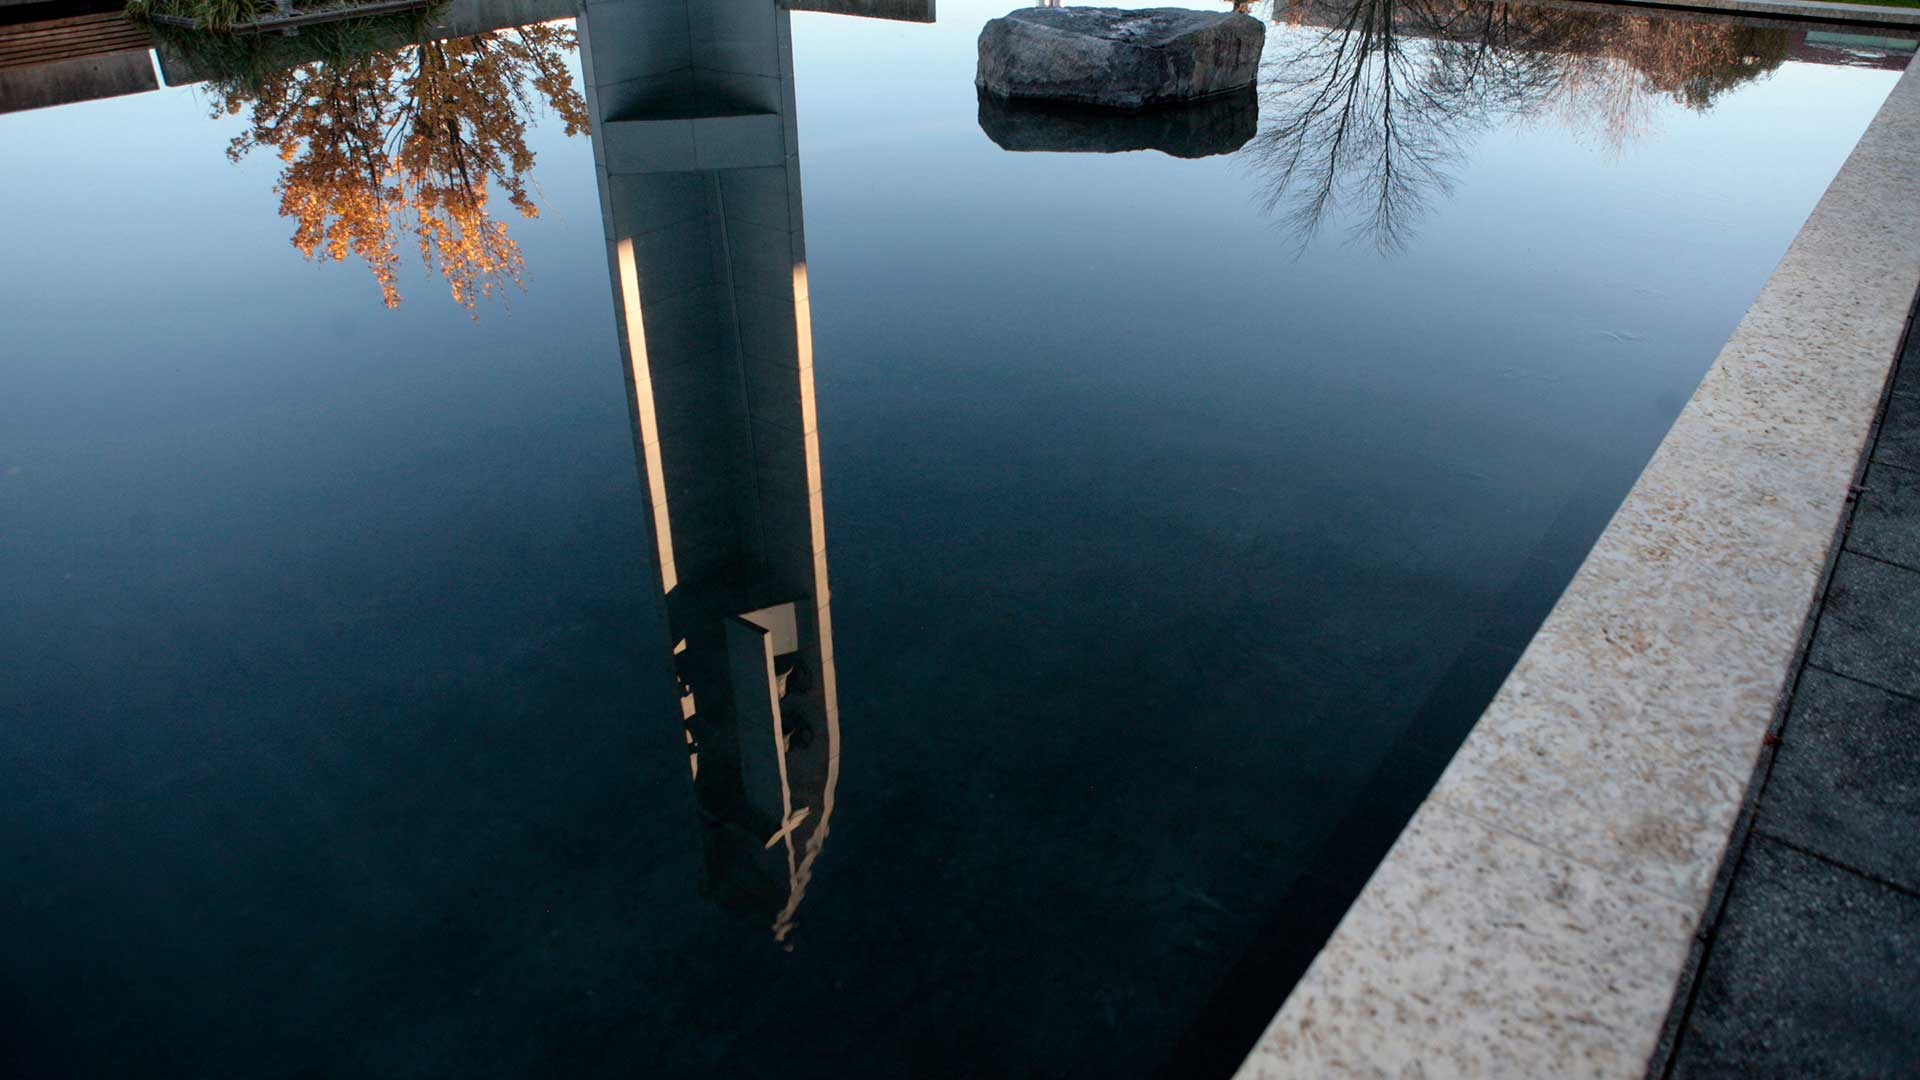 Bell Tower in Reflection Pool